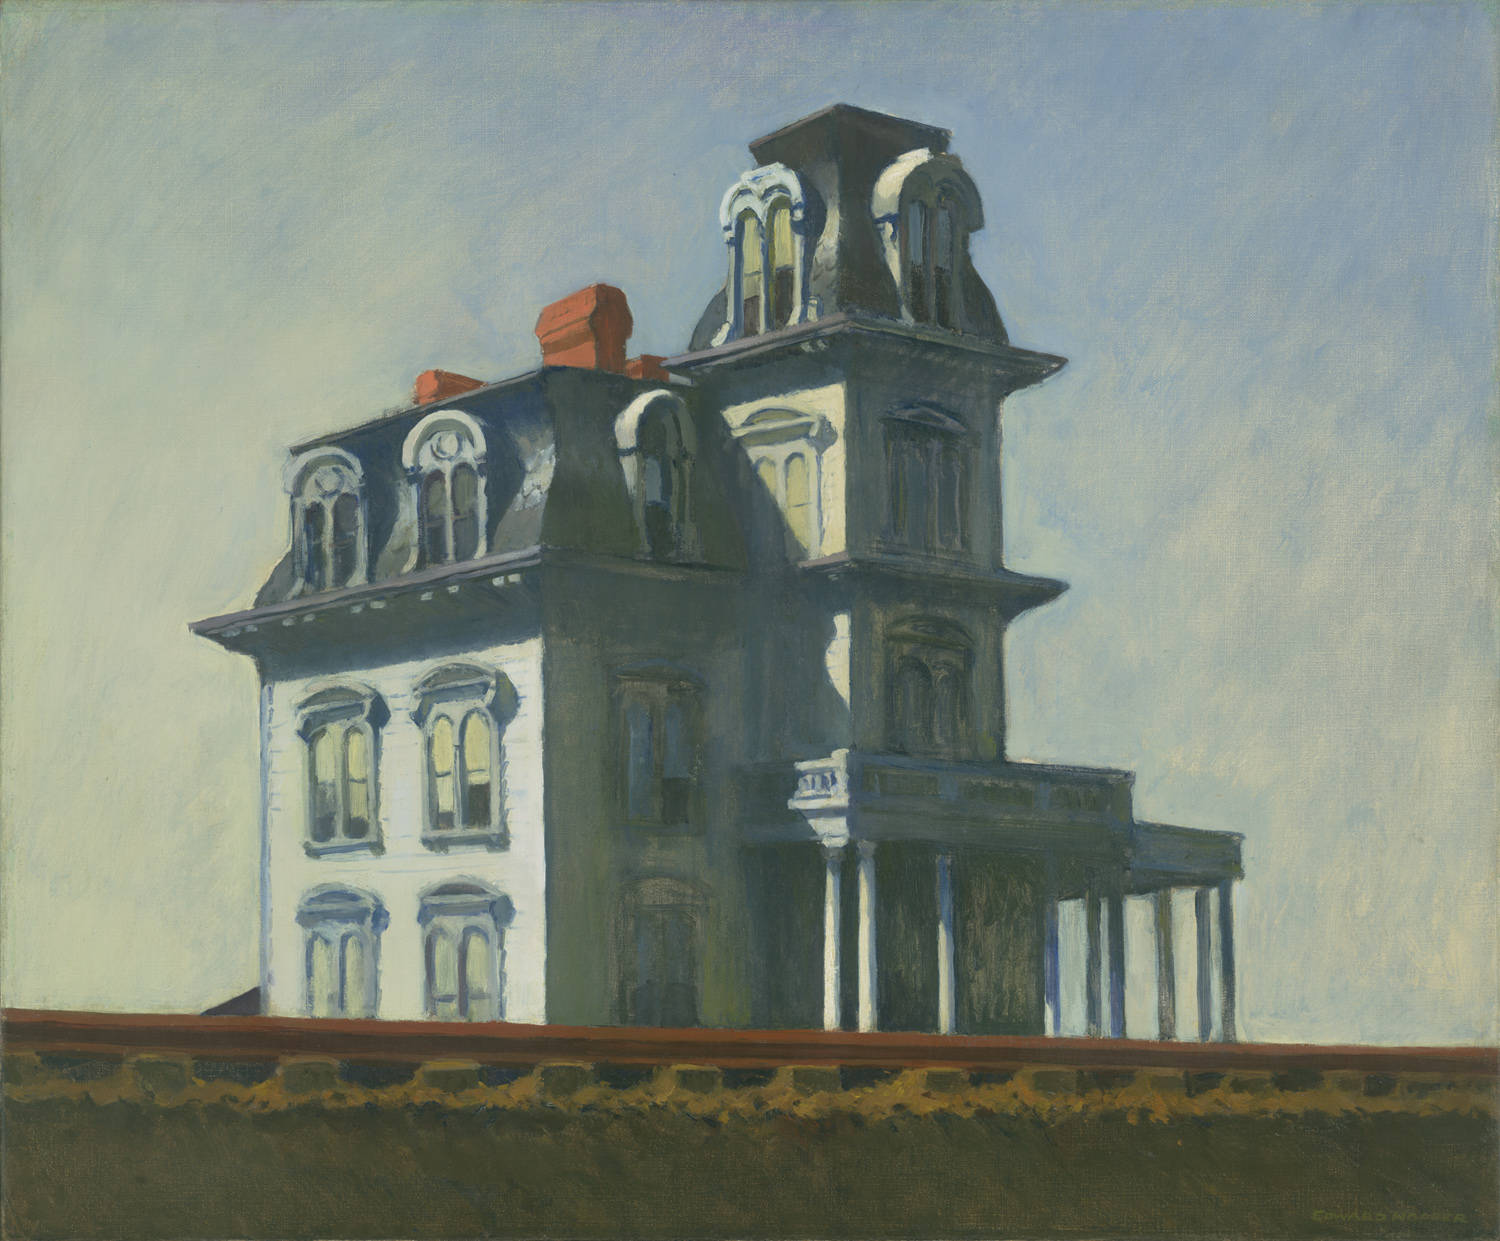 Edward Hopper. House by the Railroad (1925).